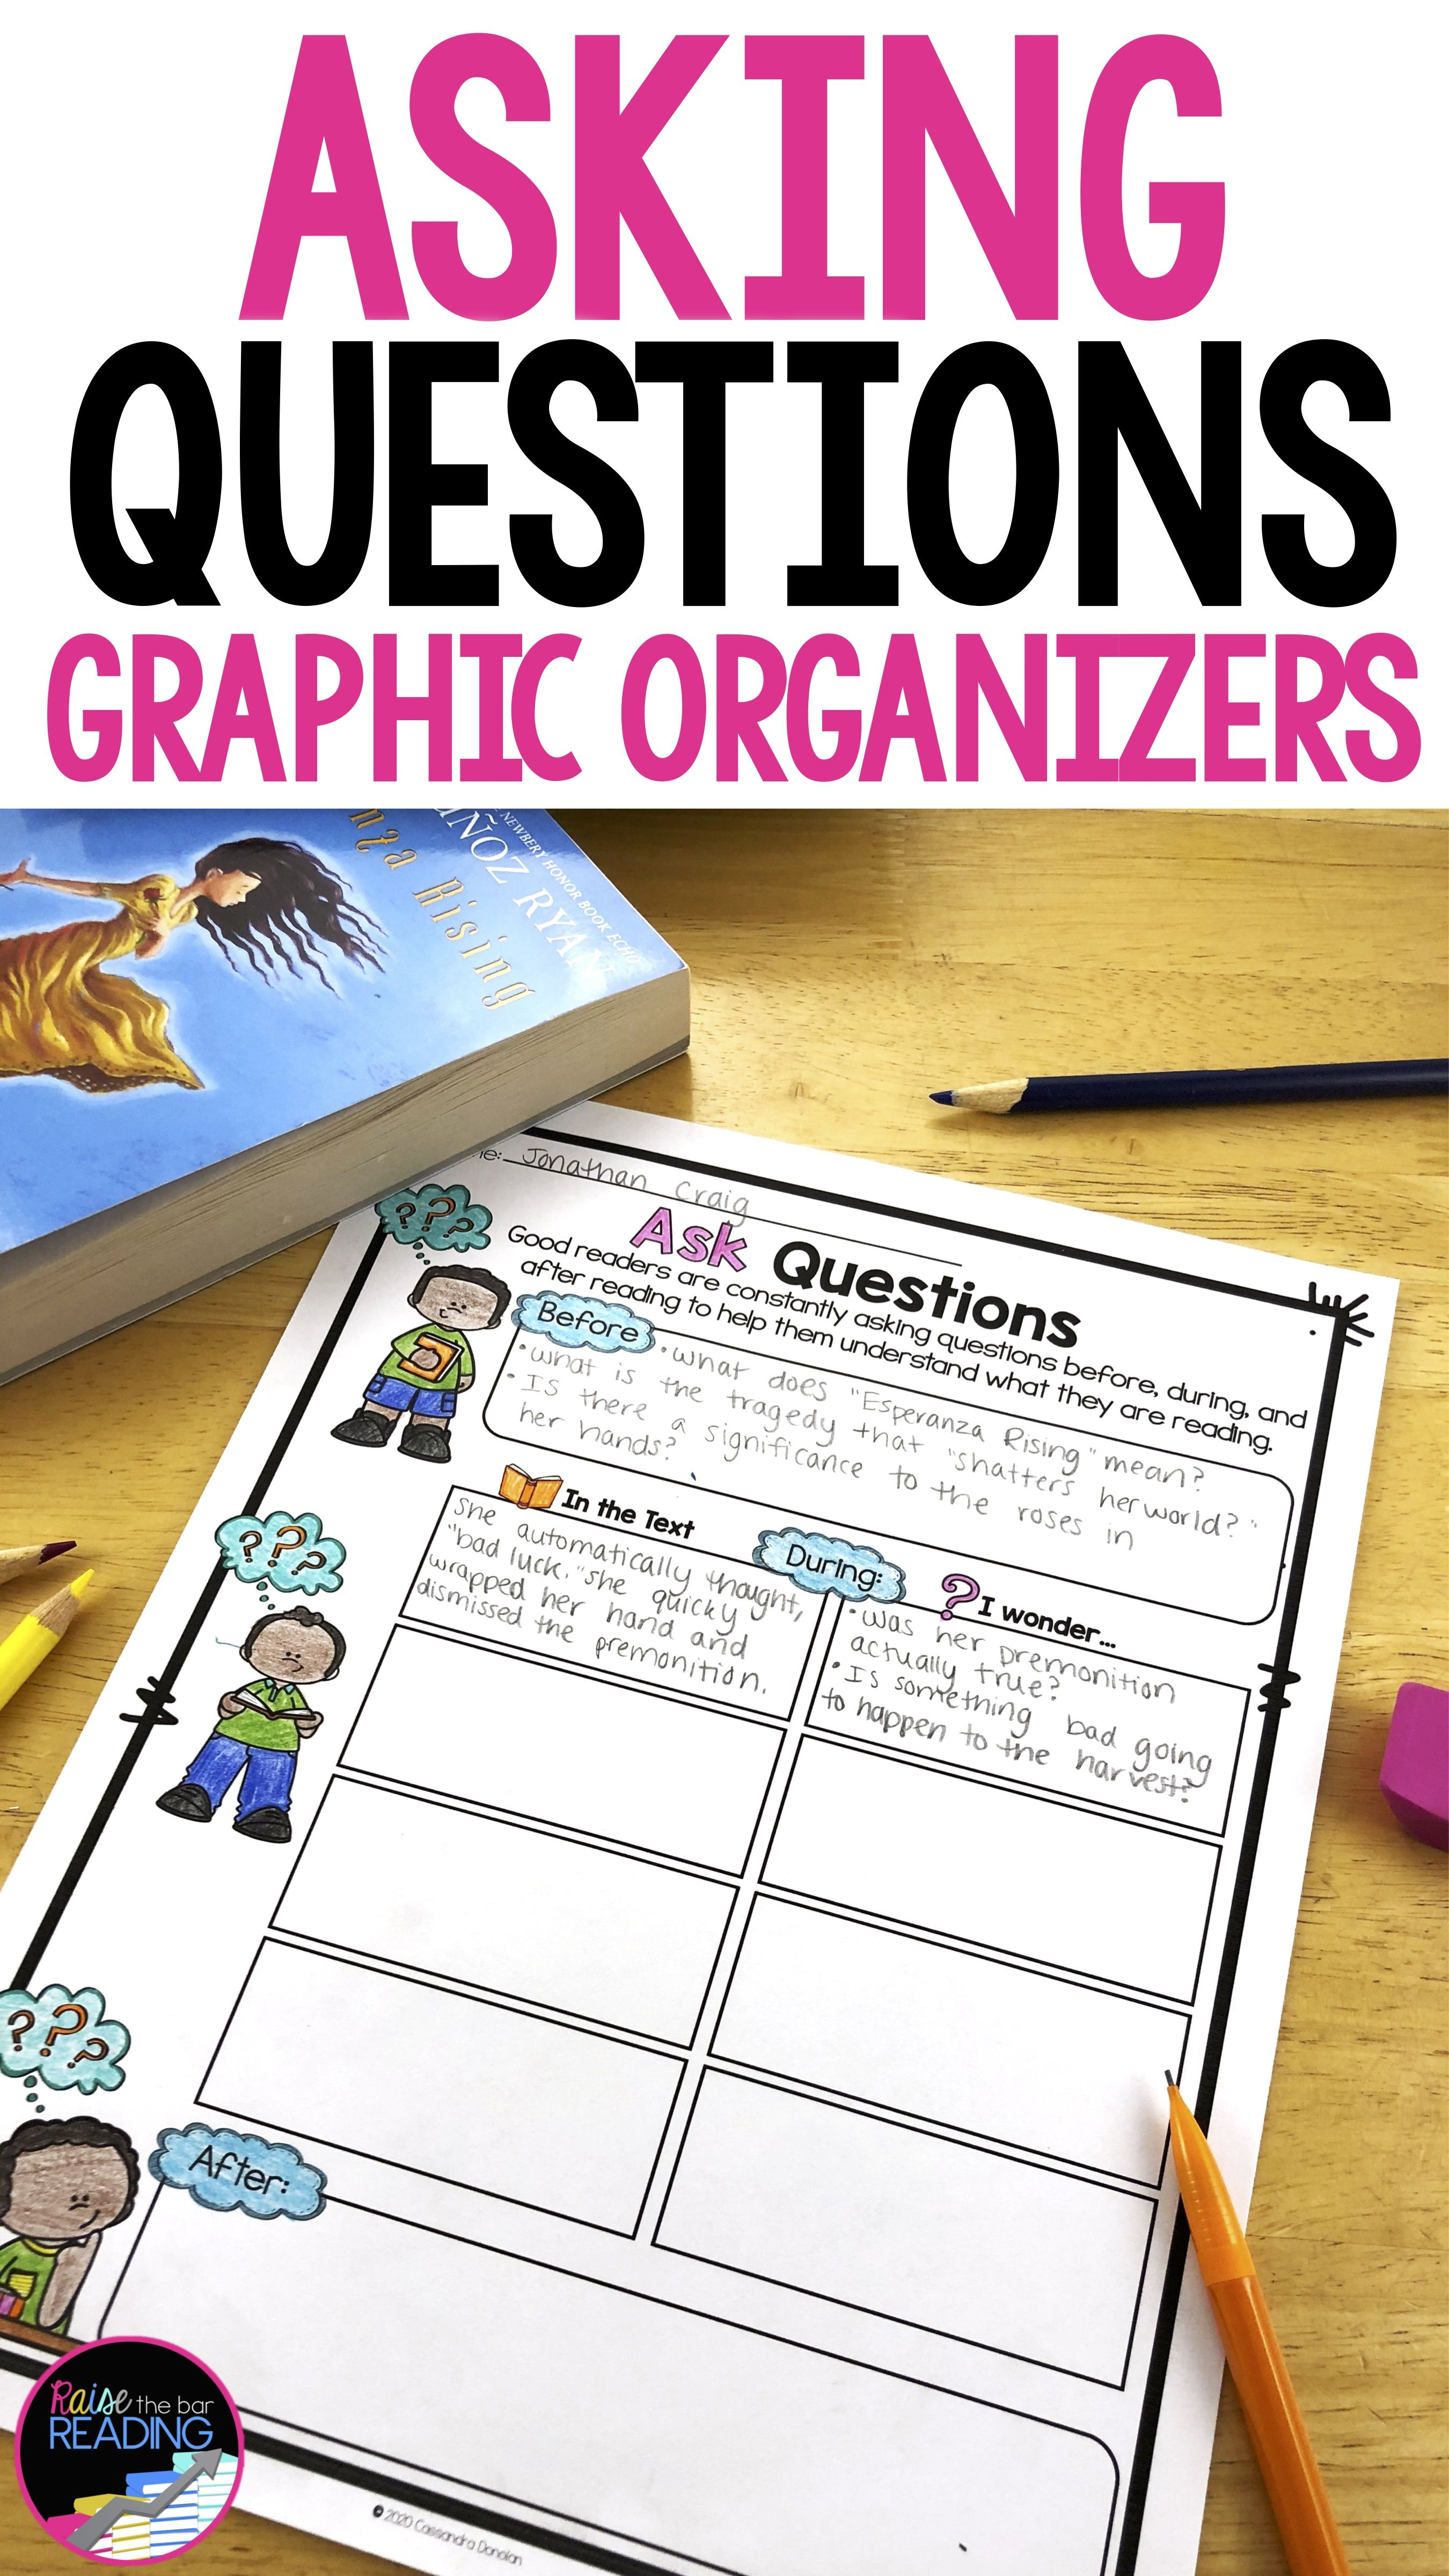 Asking Questions Graphic Organizers This Or That Questions Reading Comprehension Strategies Teaching Reading Strategies [ 4800 x 2700 Pixel ]